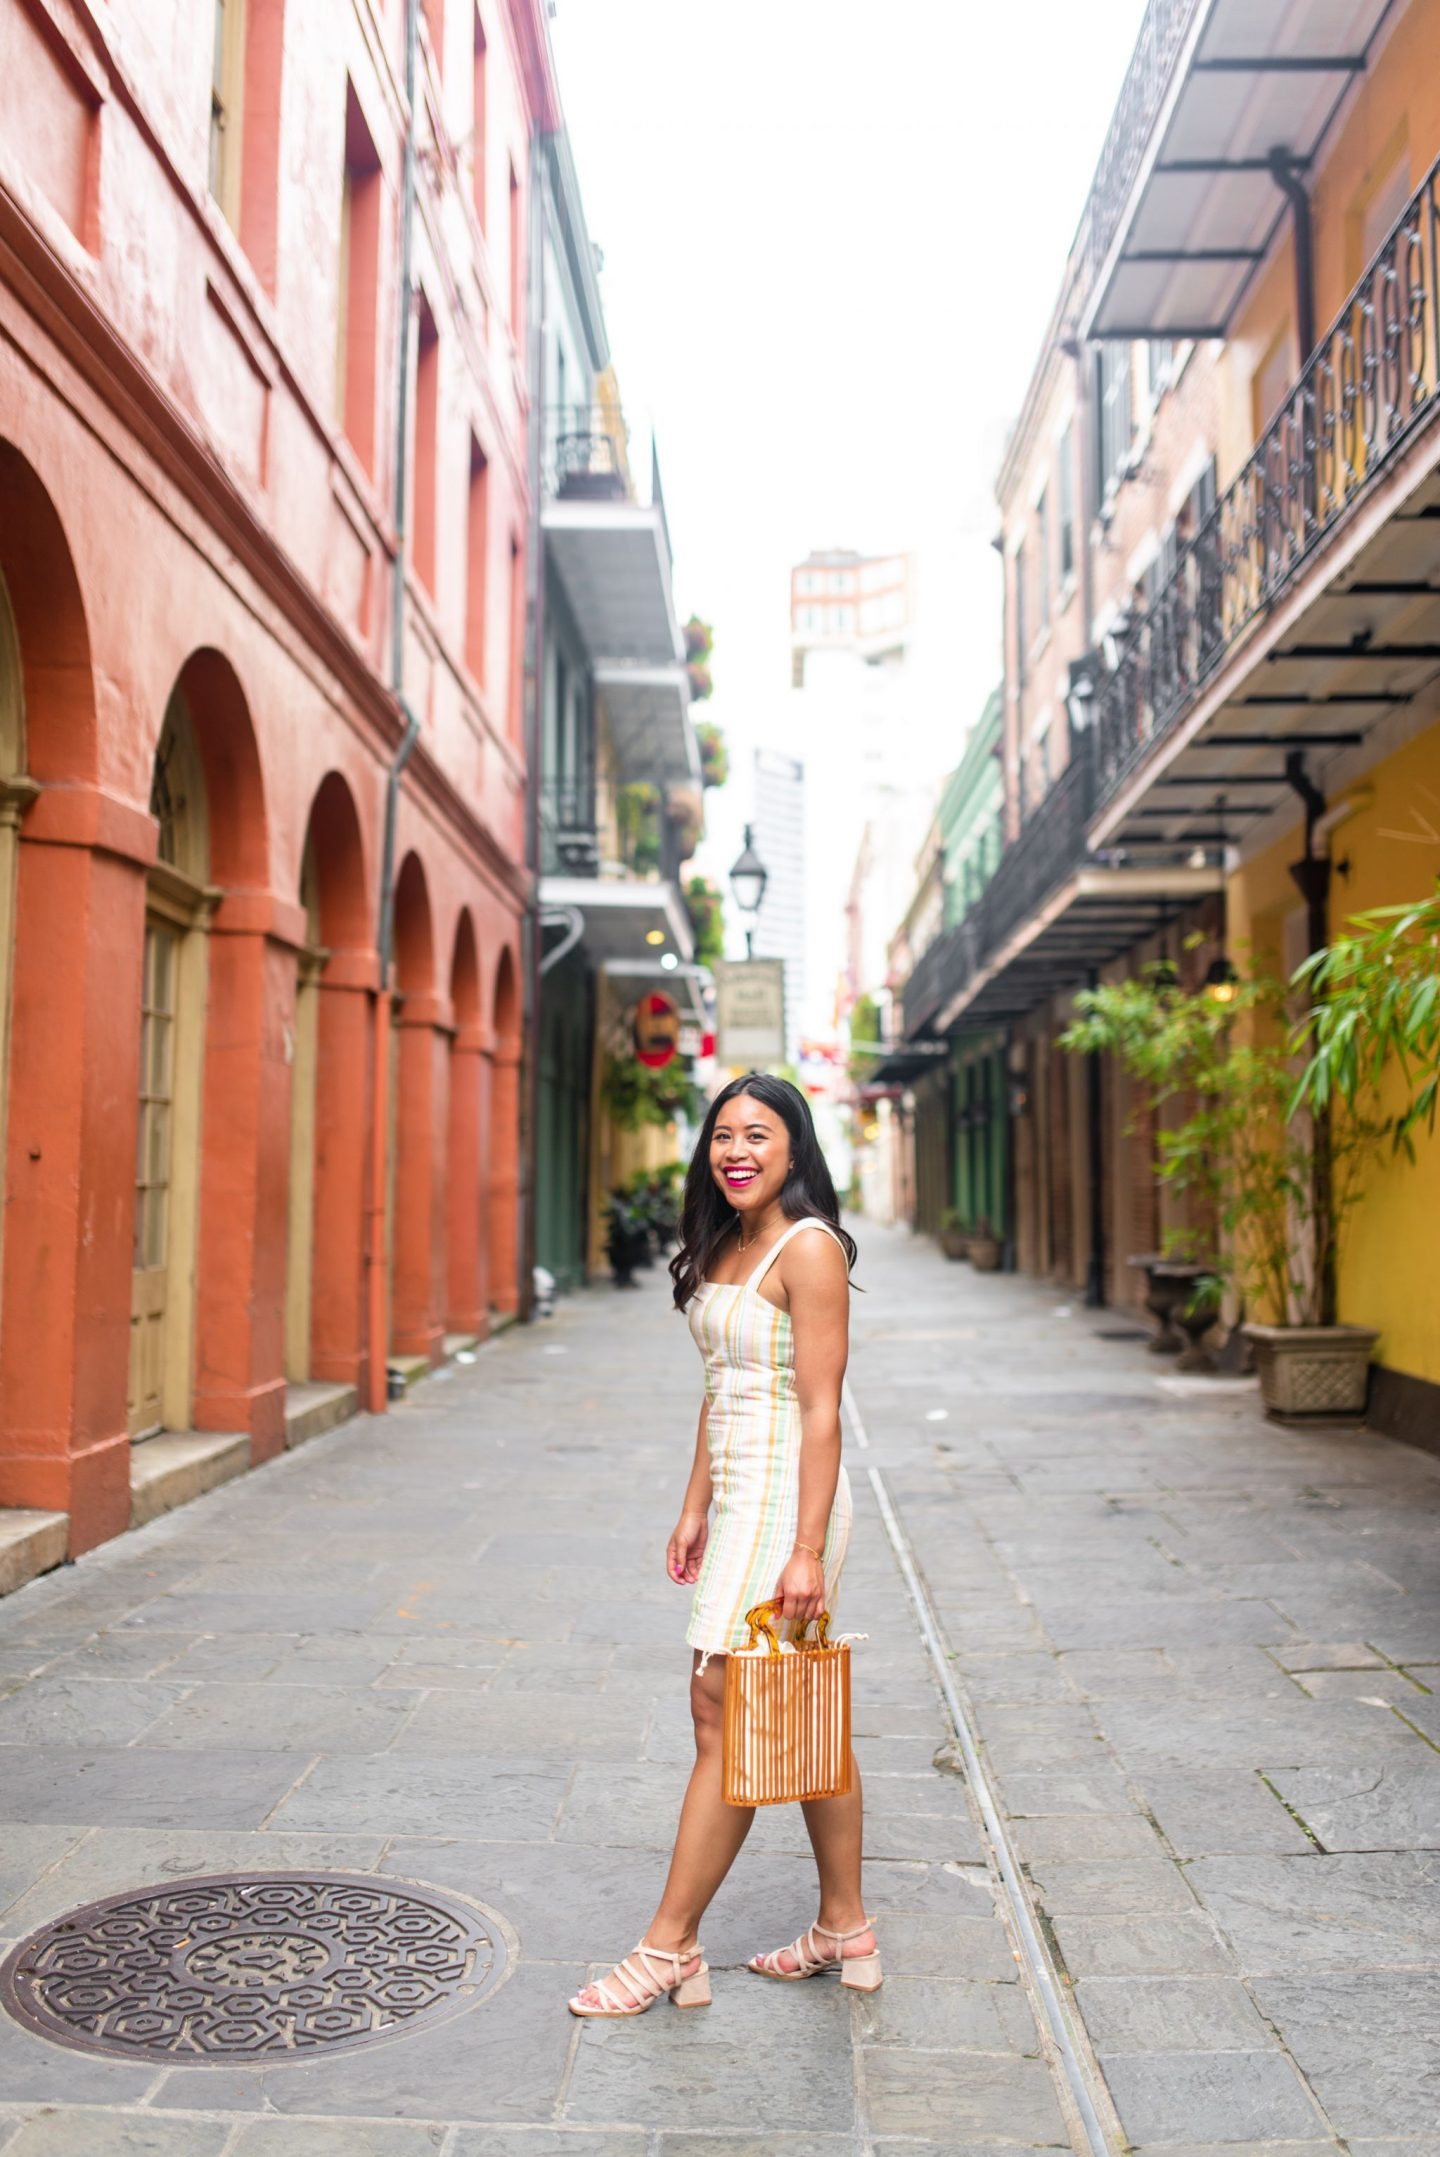 Top photo spots in the French Quarter, photo locations New Orleans, Free places to take photos in New Orleans, best places to take senior photos in New Orleans, New Orleans photo shoot, French quarter photo shoot, best places to take photos in NOLA, photography spots in NOLA, Emma's Edition, Travel blogger, Seattle blogger, Travel style, Visit New Orleans